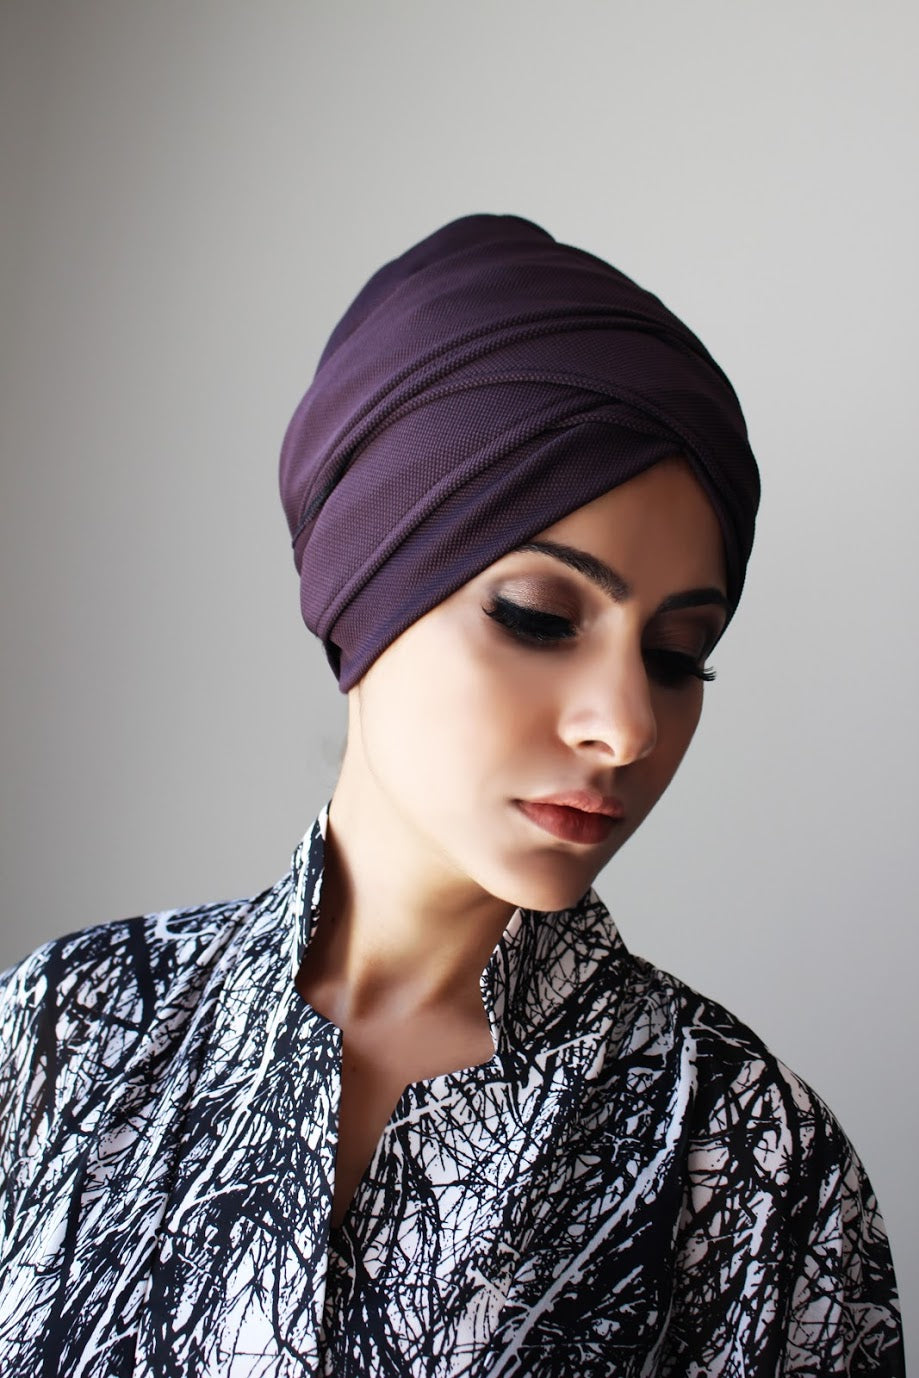 Stretch textured pull-on turban hijab with ties